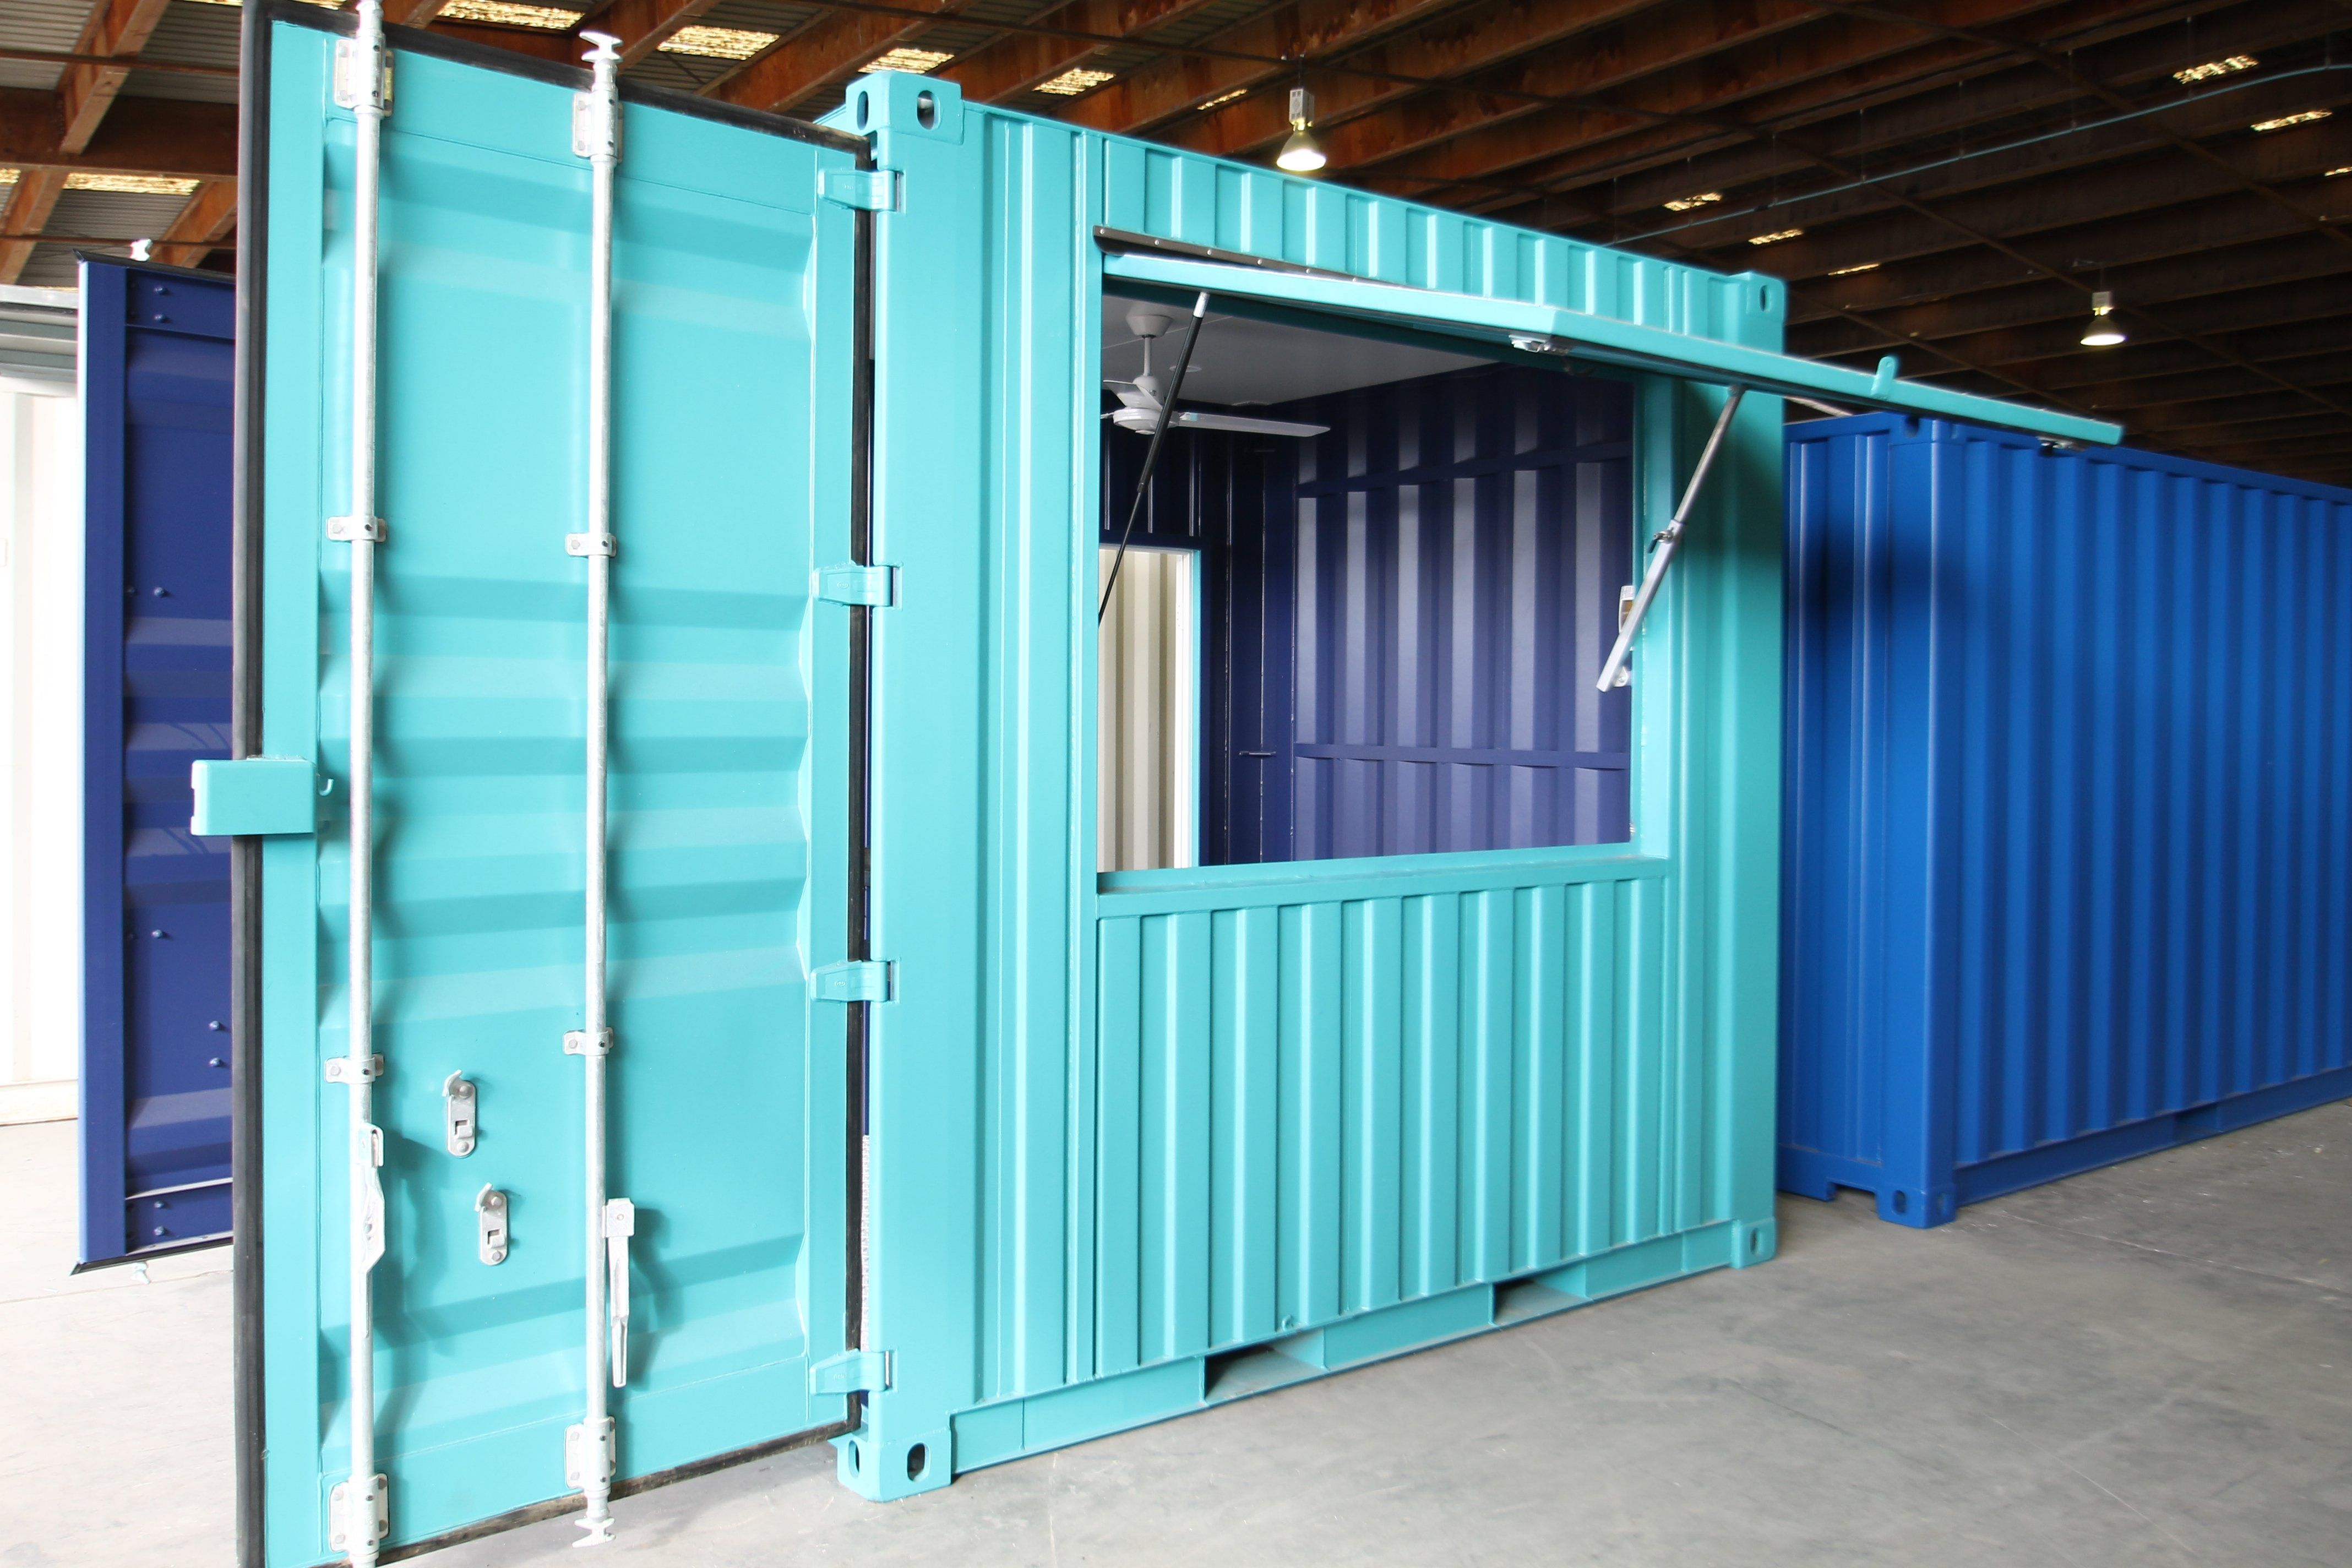 Royal Wolf S 10ft Mini Pop Up Container Shops Offer The Perfect Combination Of Portability And Security For Your Busine Container Shop Pop Up Shops Pop Up Shop